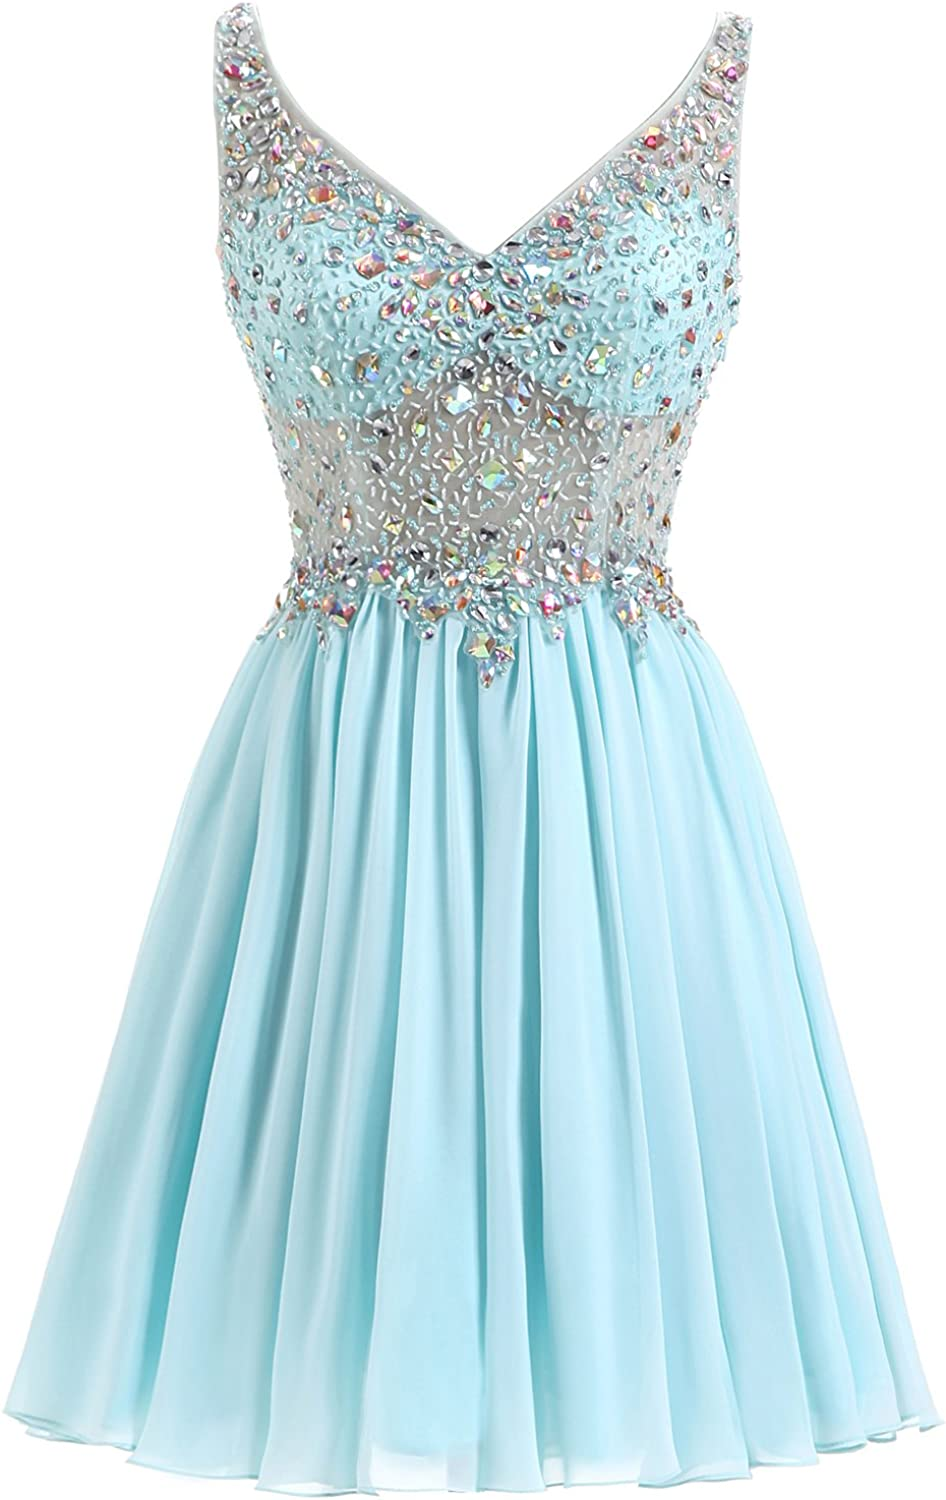 Epinkbridal Women's Short Beaded Bodice Prom Party Dress Crystal Homecoming Dress for Juniors